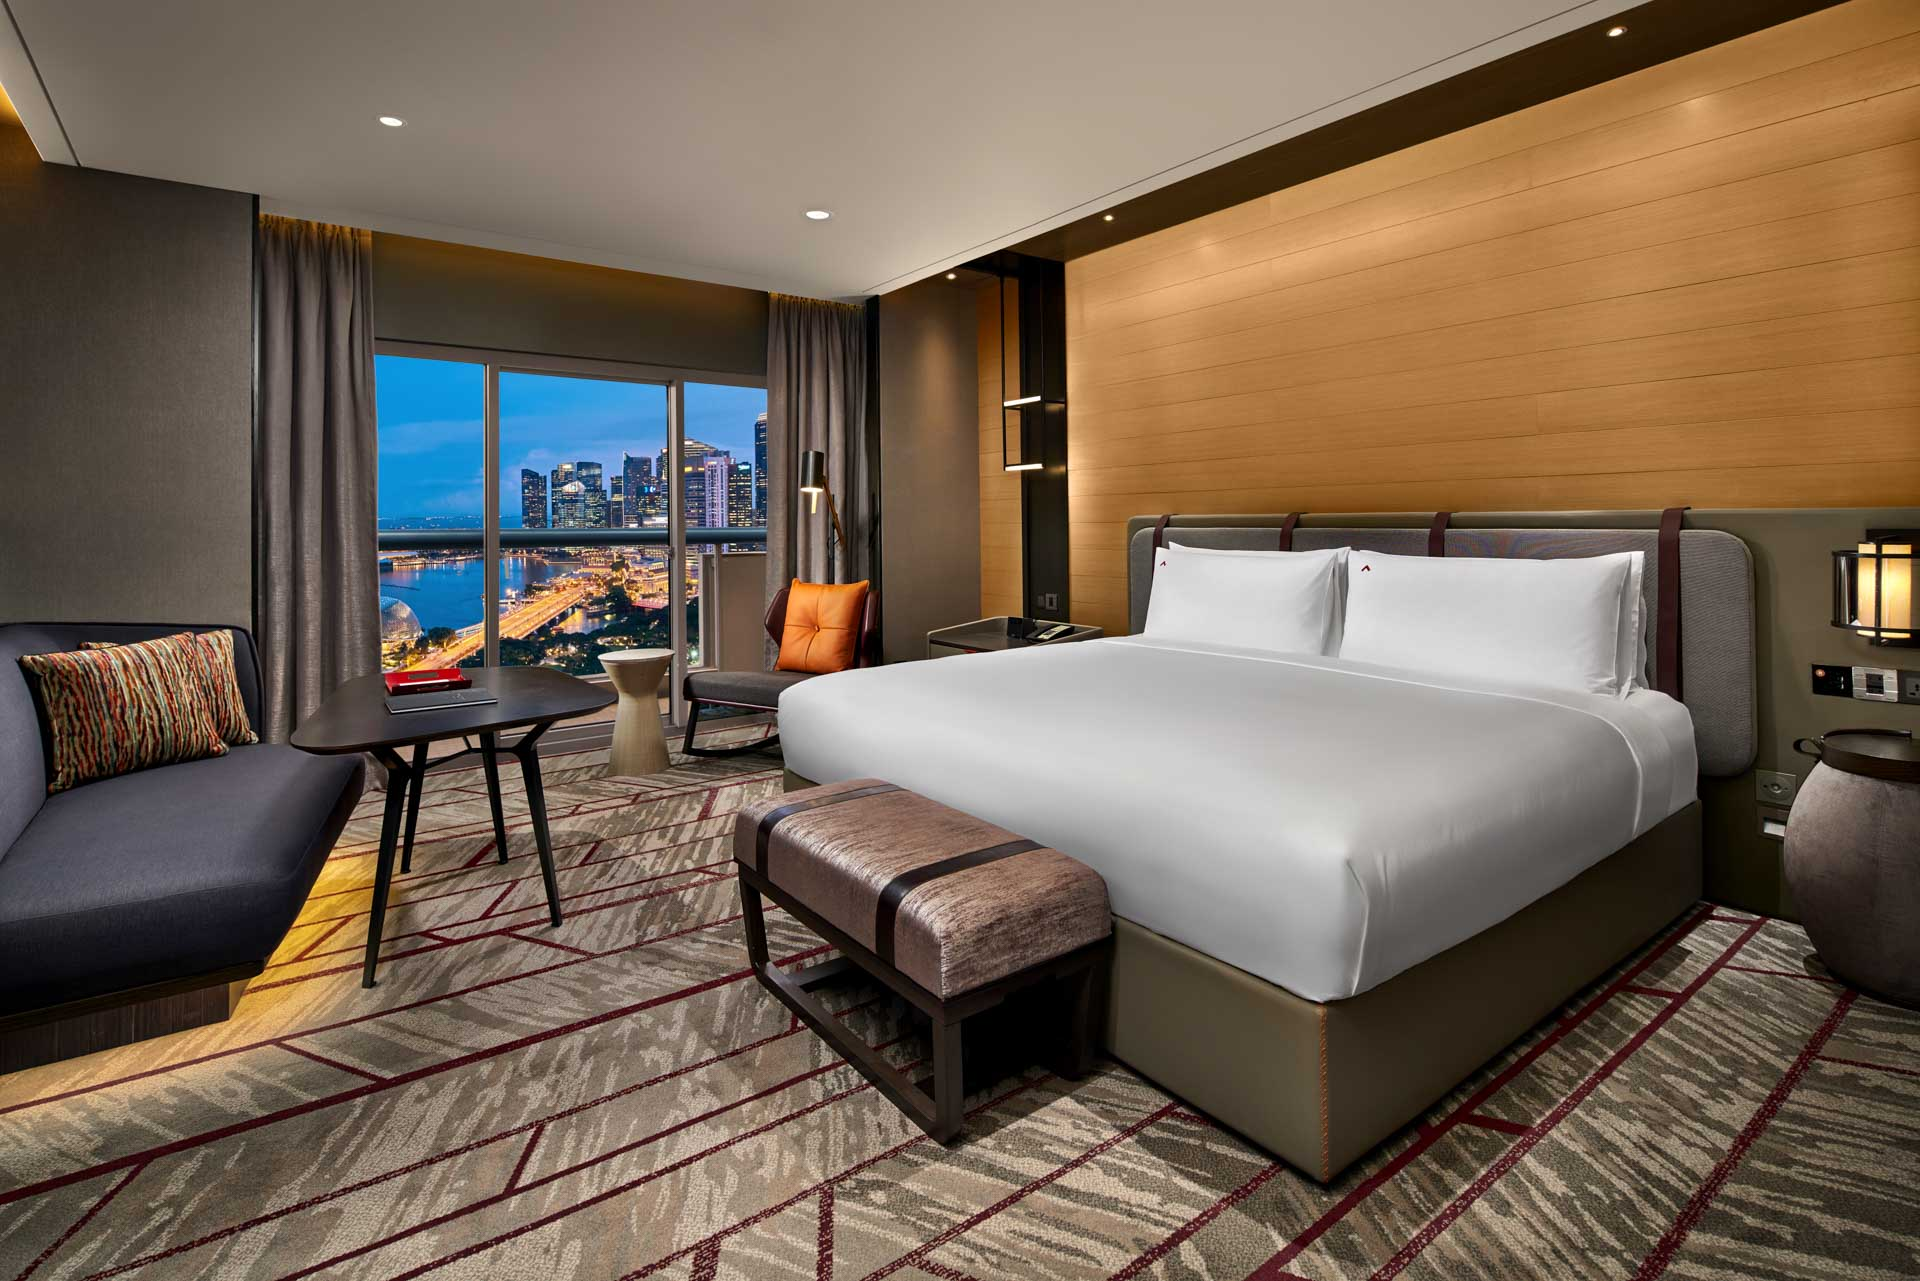 luxury hotel photography of the king bedroom at swissotel the stamfored in singapore